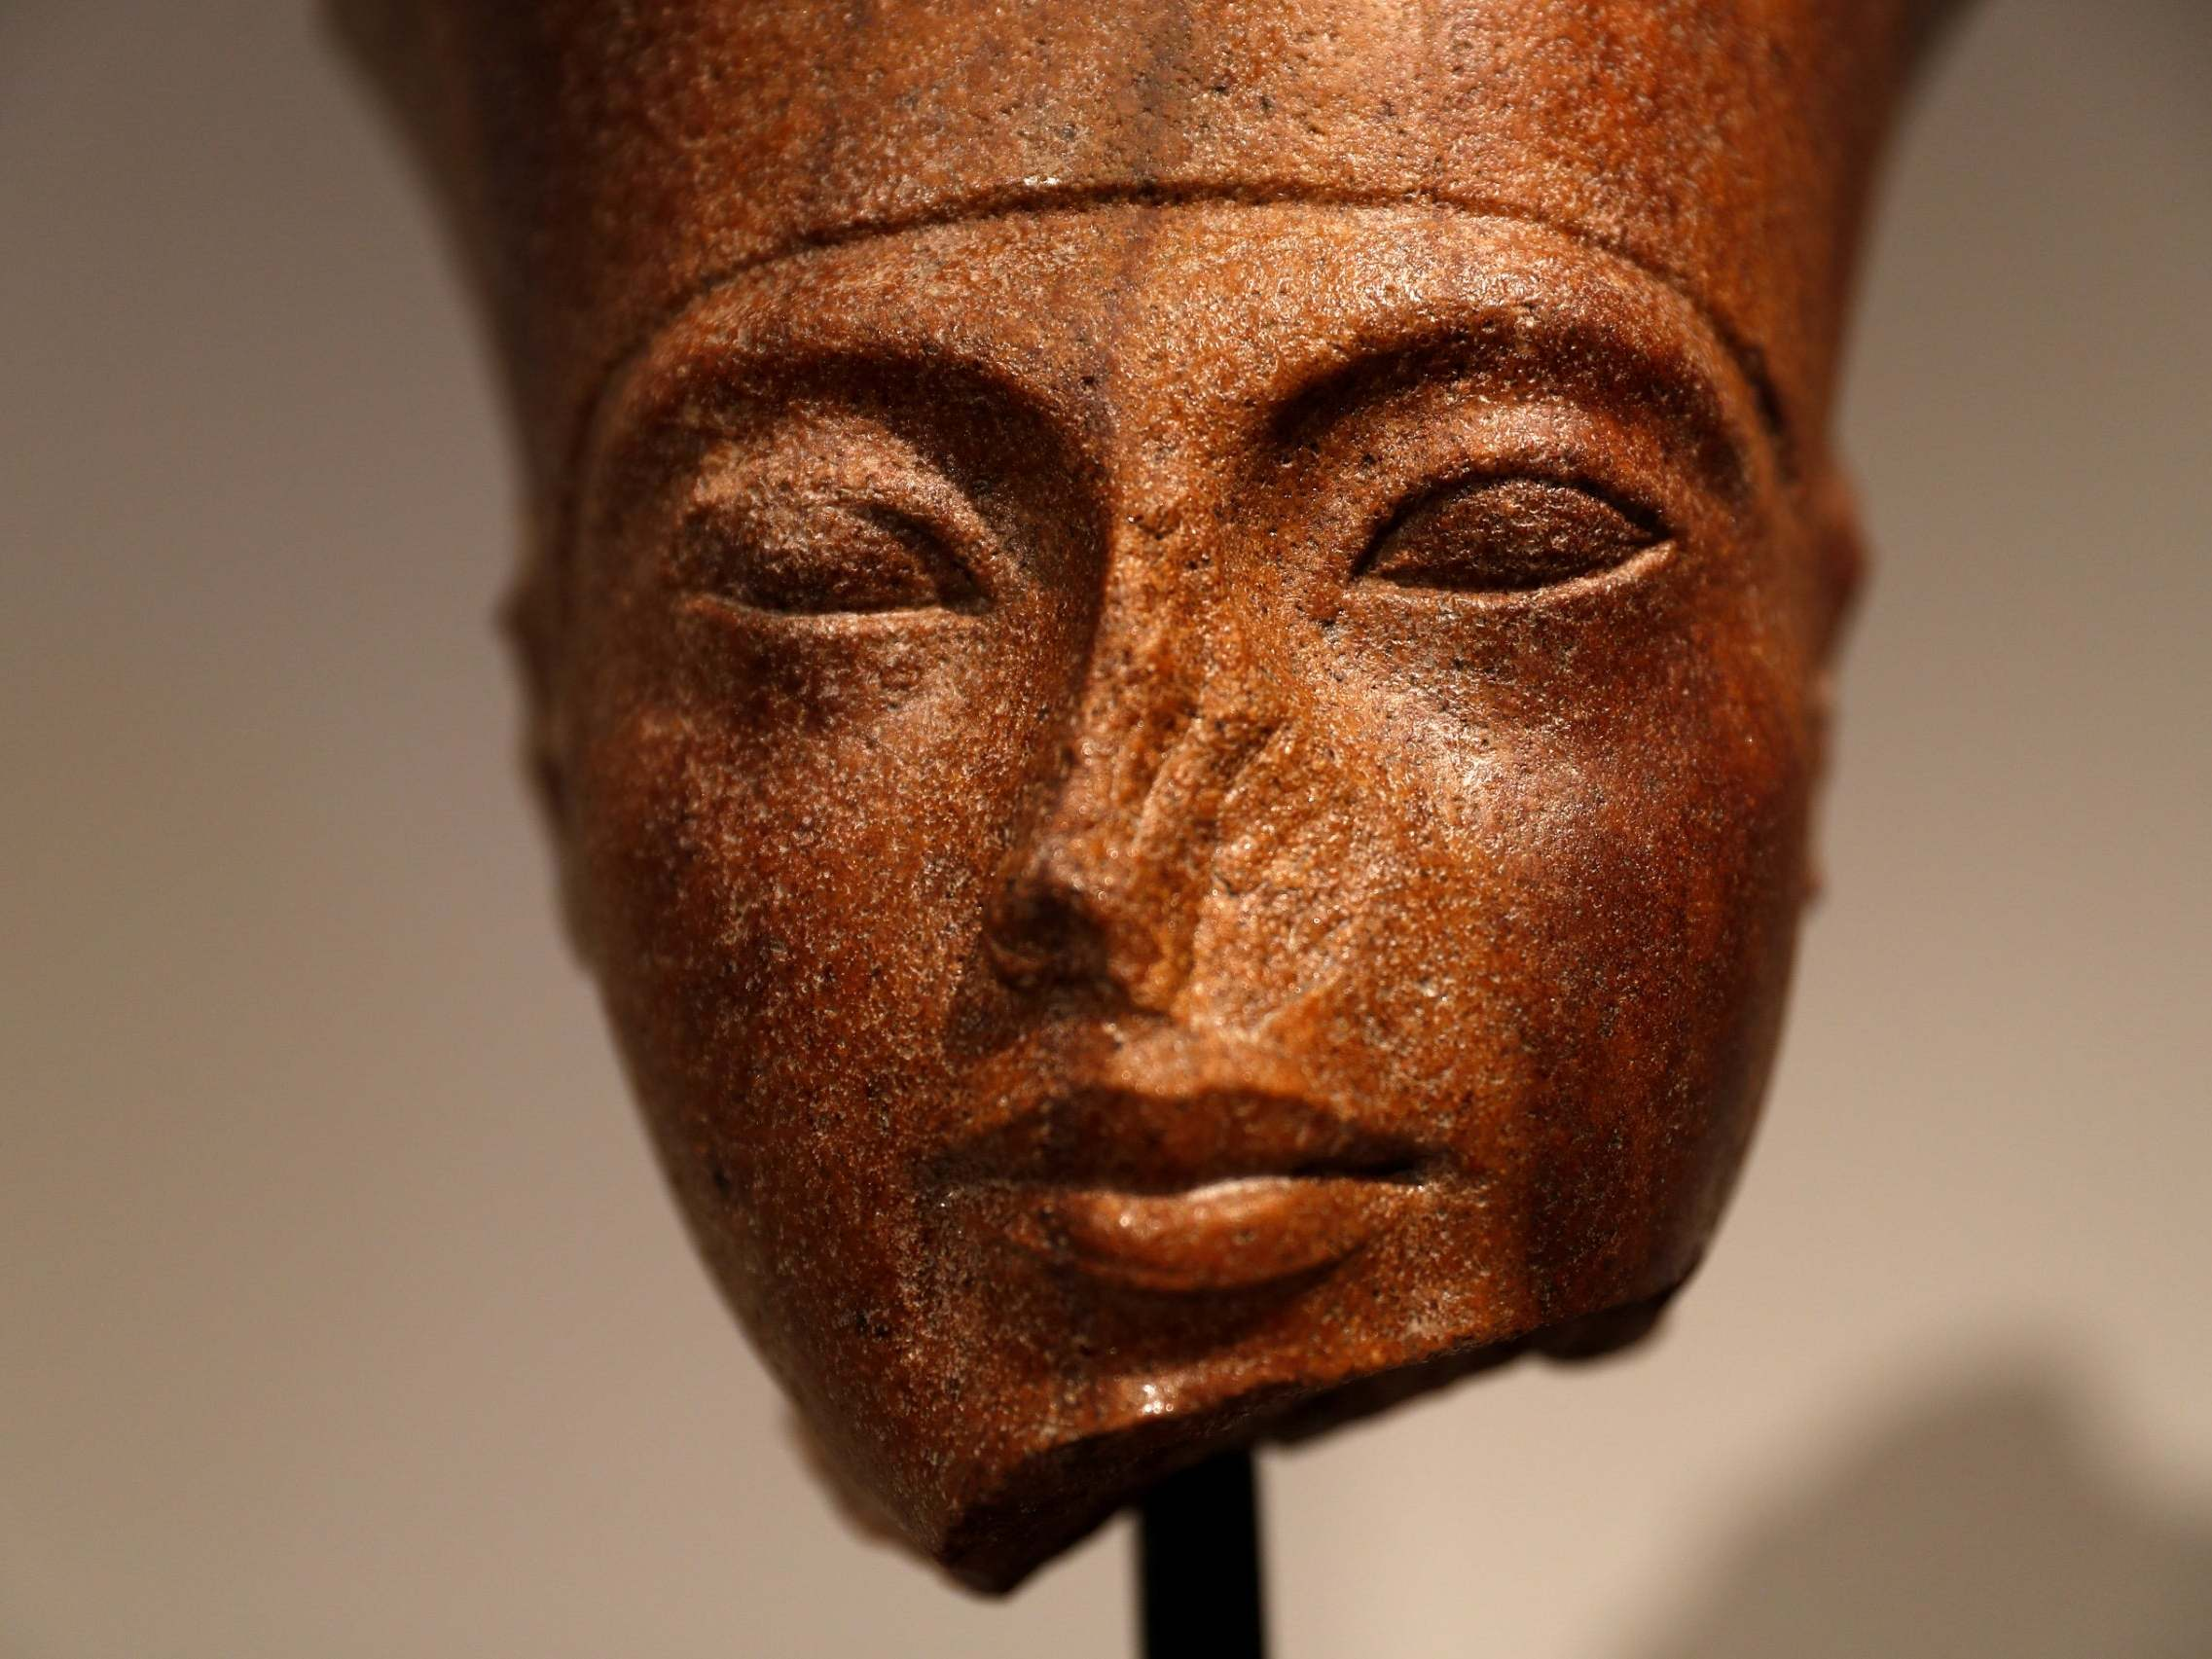 Auction house sells ancient relic Egypt claims was stolen in 1970s